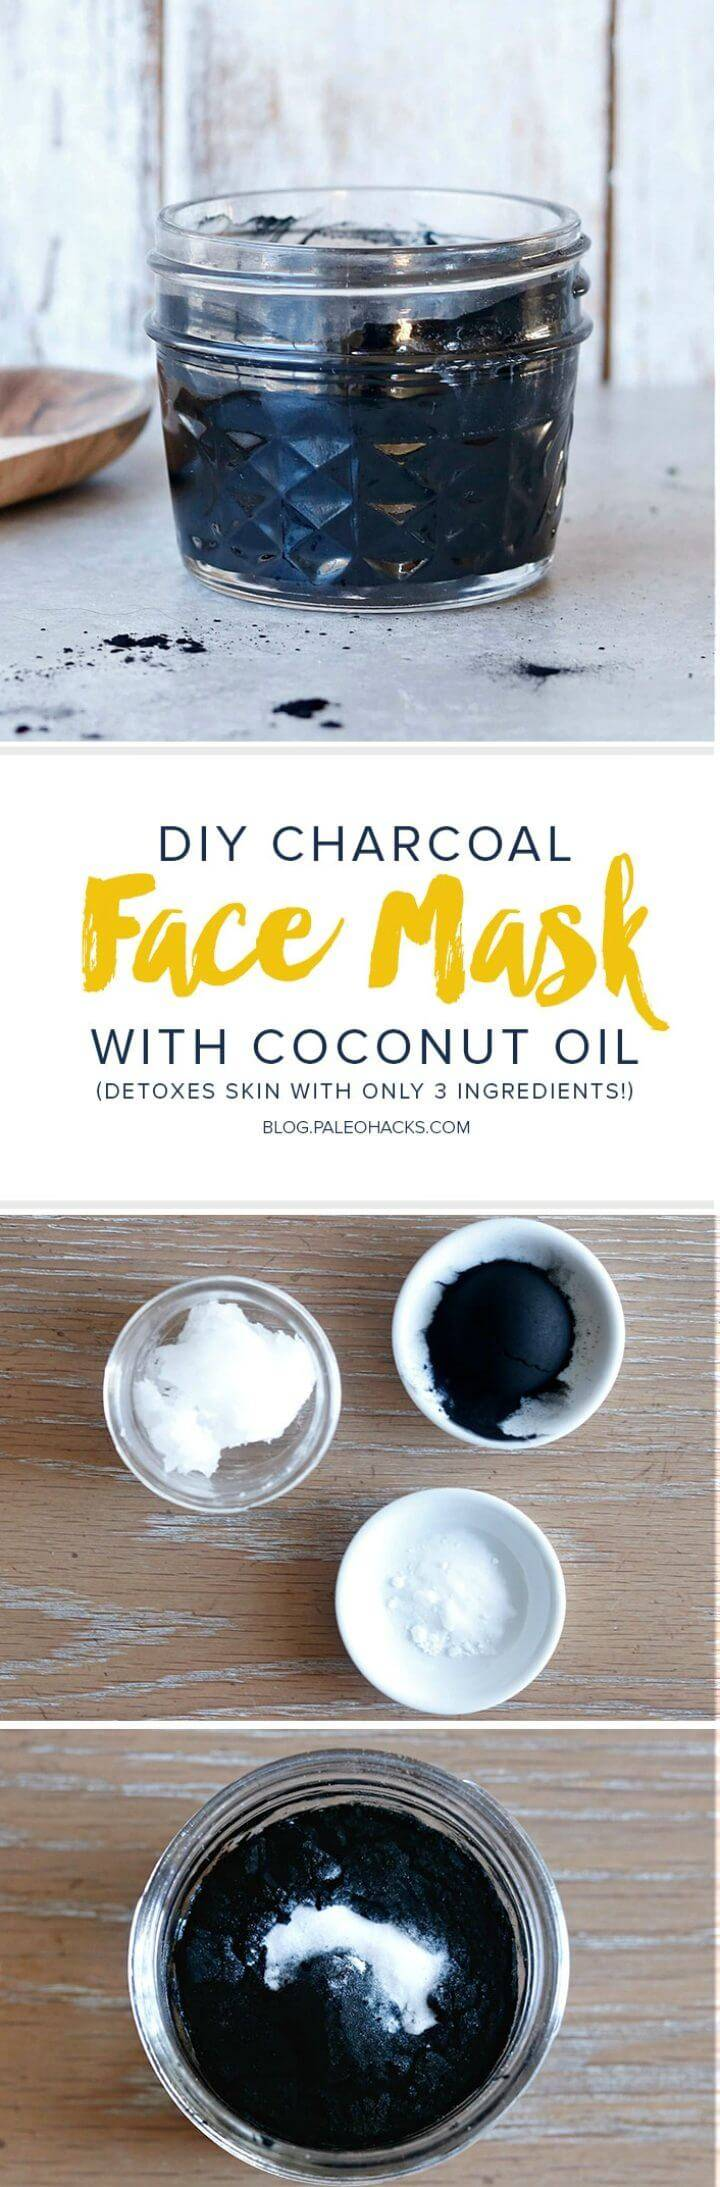 Charcoal Face Mask with Coconut Oil 1